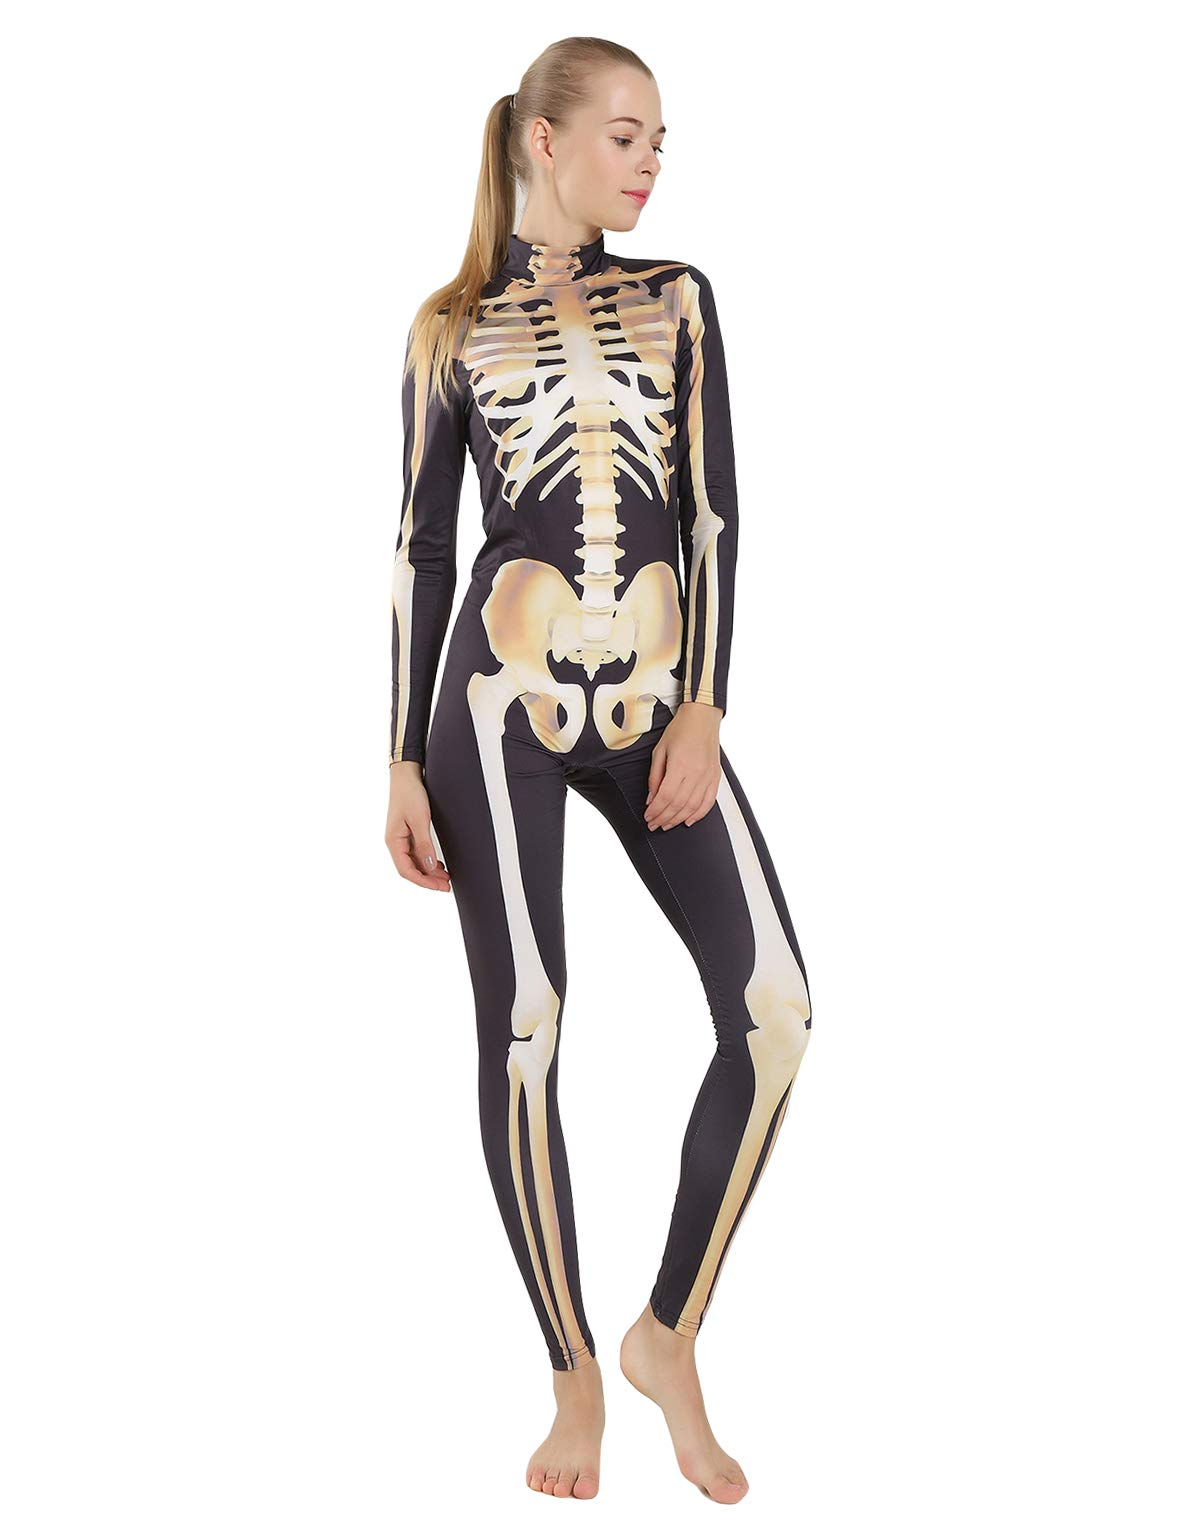 skeleton catsuit Quesera Women's Halloween Costume Skeleton Zip Up Skinny Catsuit Stretch Jumpsuit 61xWnTG4ipL